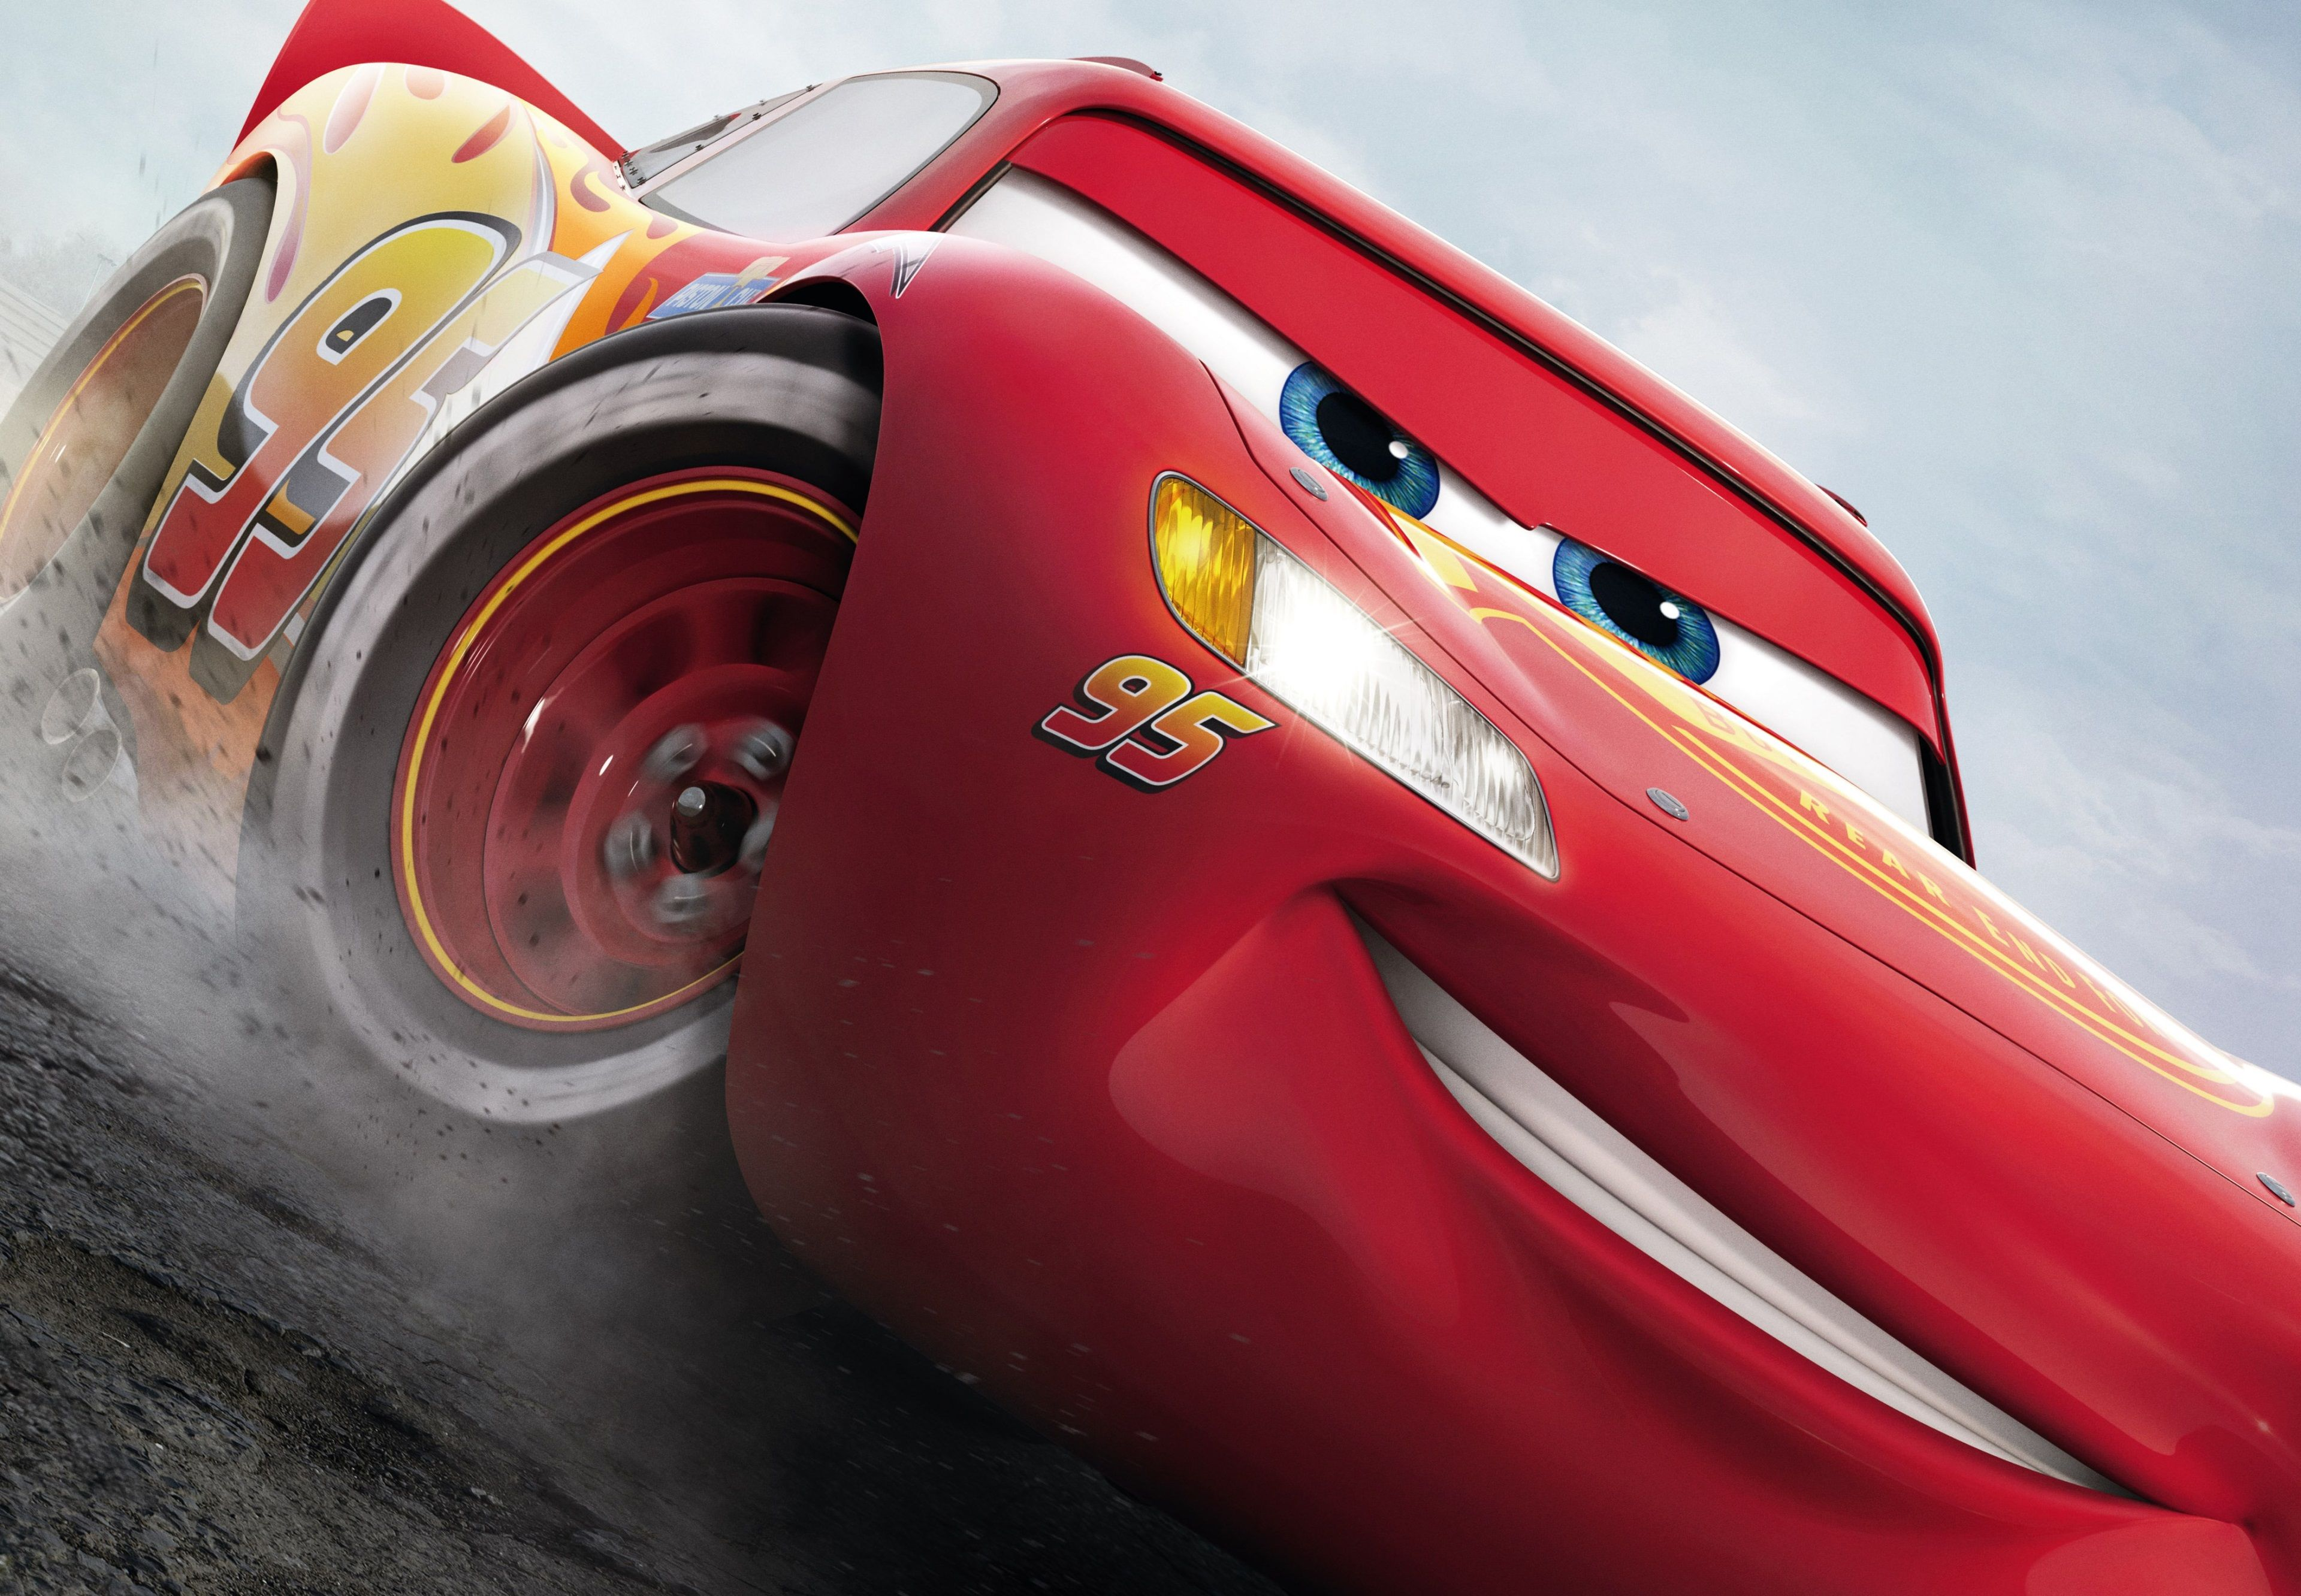 3840x2664 Lightning Mcqueen 4k Backgrounds For Desktop Hd